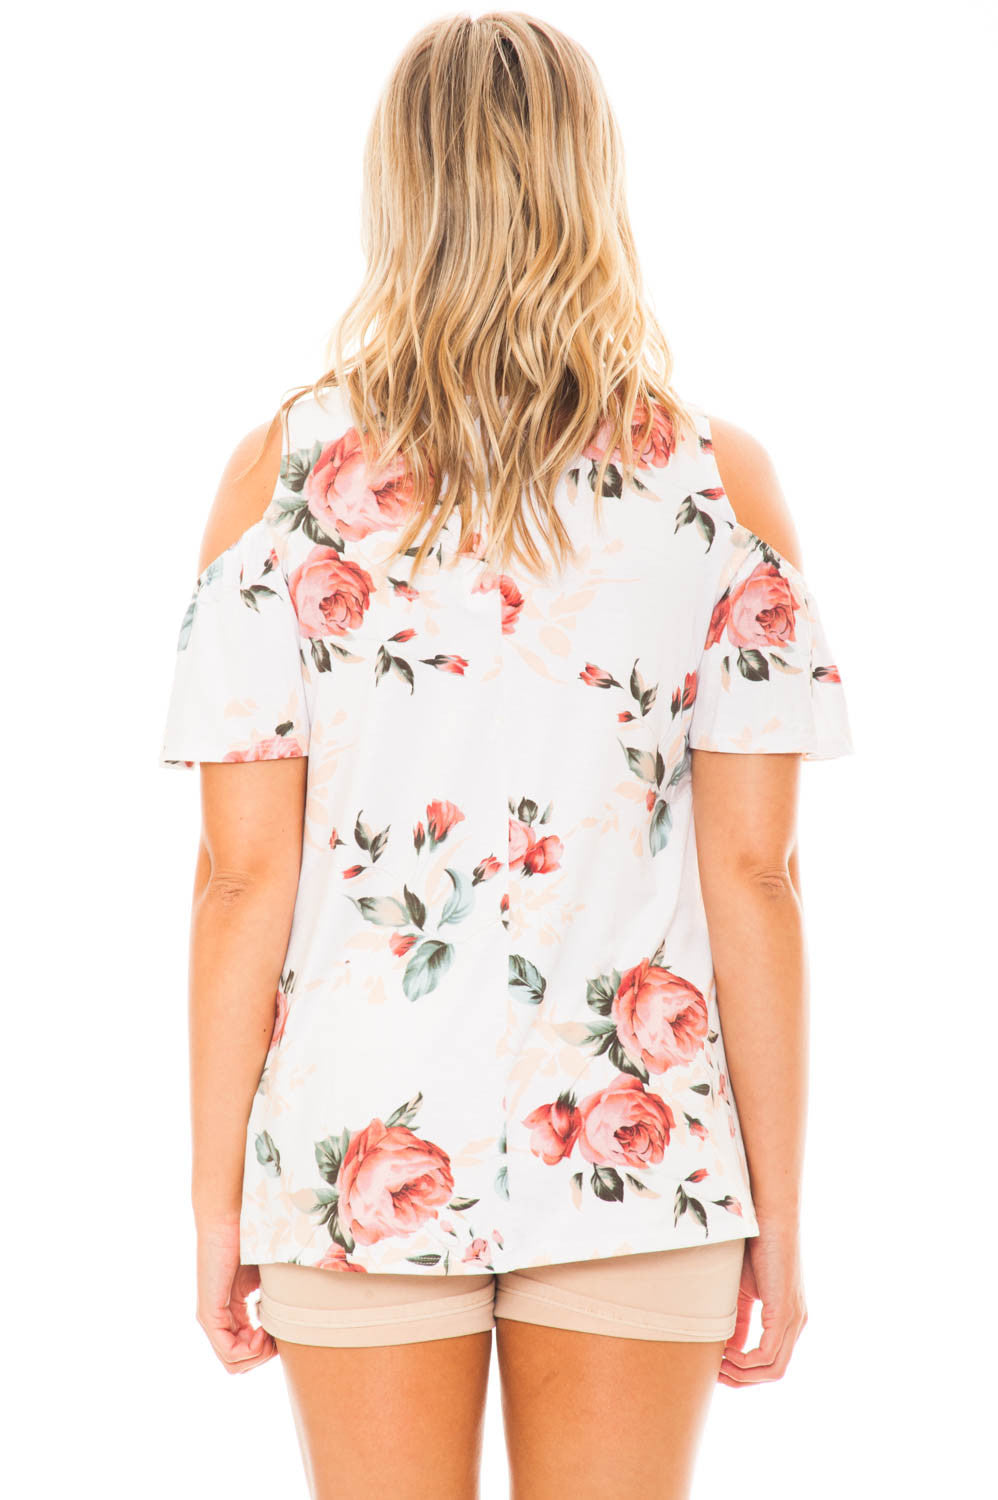 Blouse - Floral Cold Shoulder Top